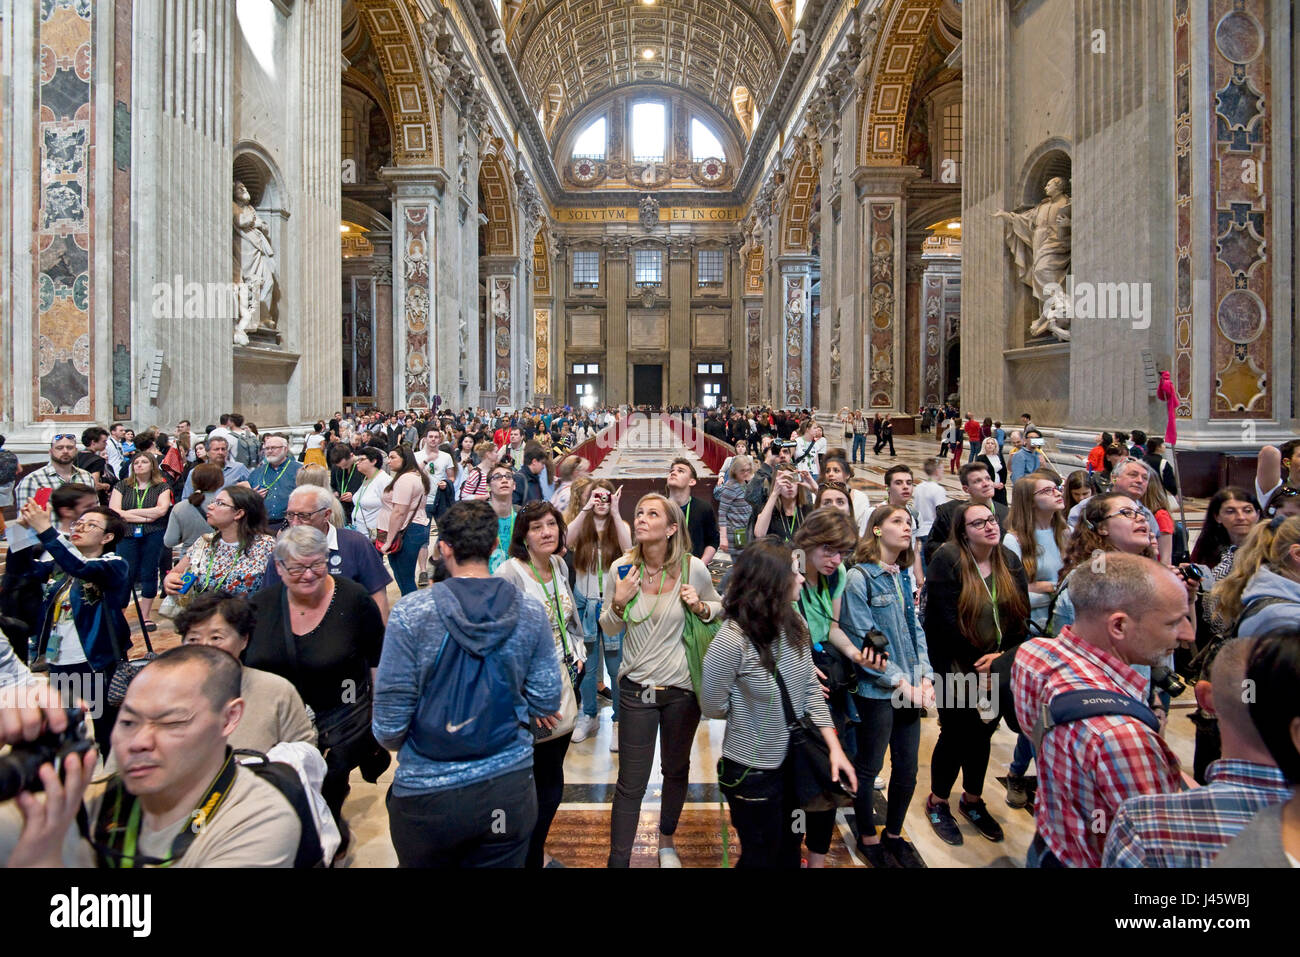 A wide angle interior view inside St Peter's Basilica of the main alter and crowds of tourists and visitors. - Stock Image